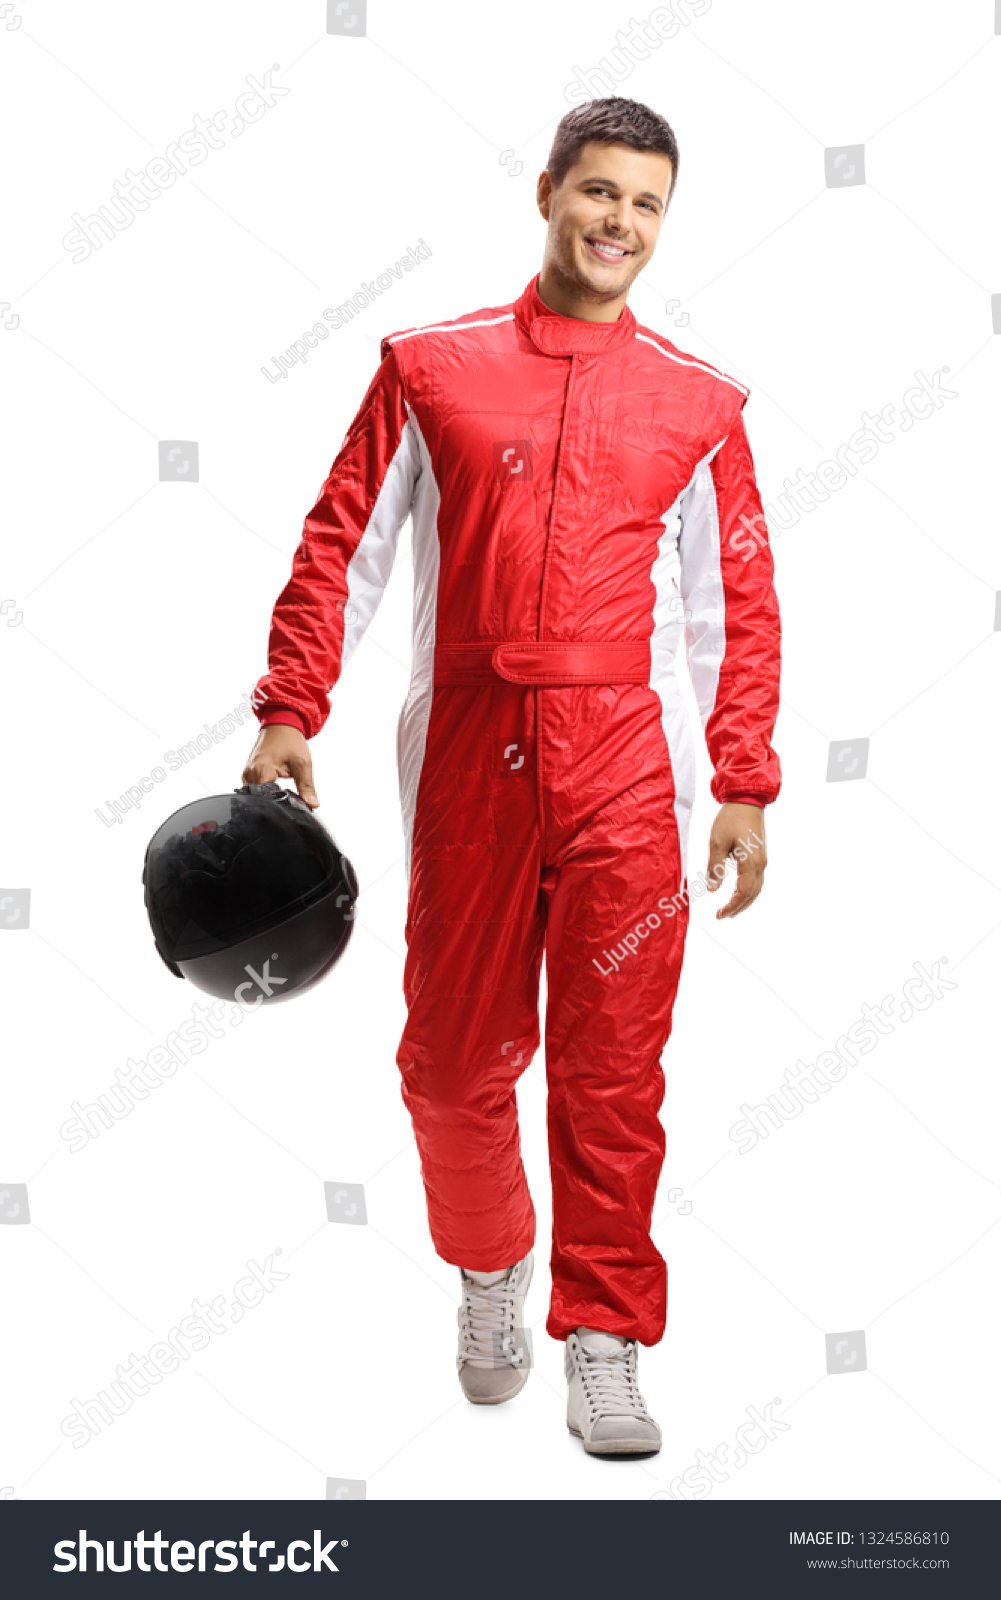 Full length portrait of a male car racer holding a helmet and walking towards the camera isolated on white background #1324586810